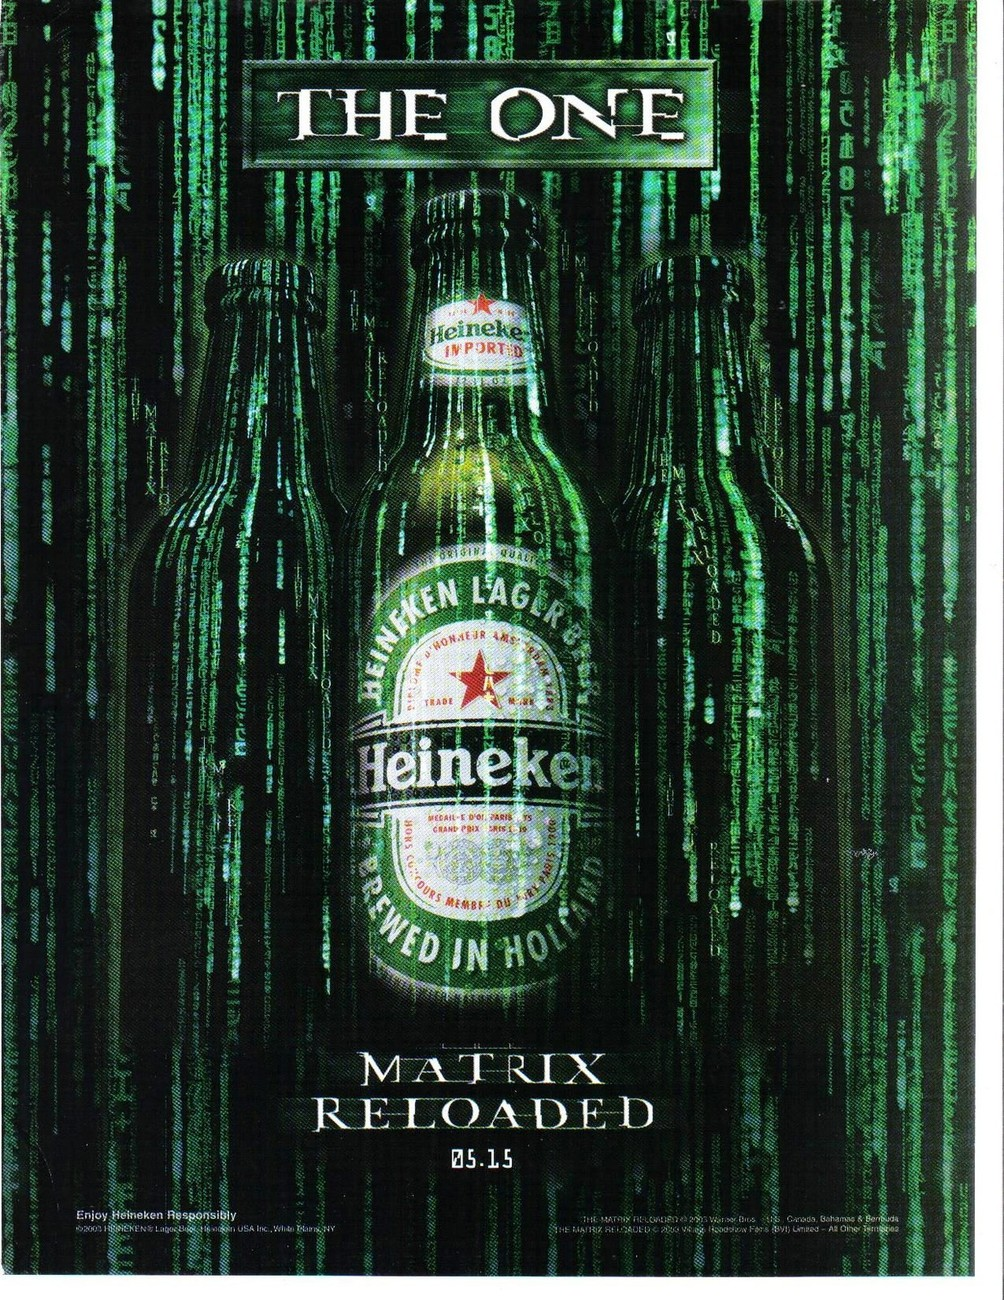 Primary image for Heineken The One Matrix Reloaded Full Page Original Color Print Ad Very Good